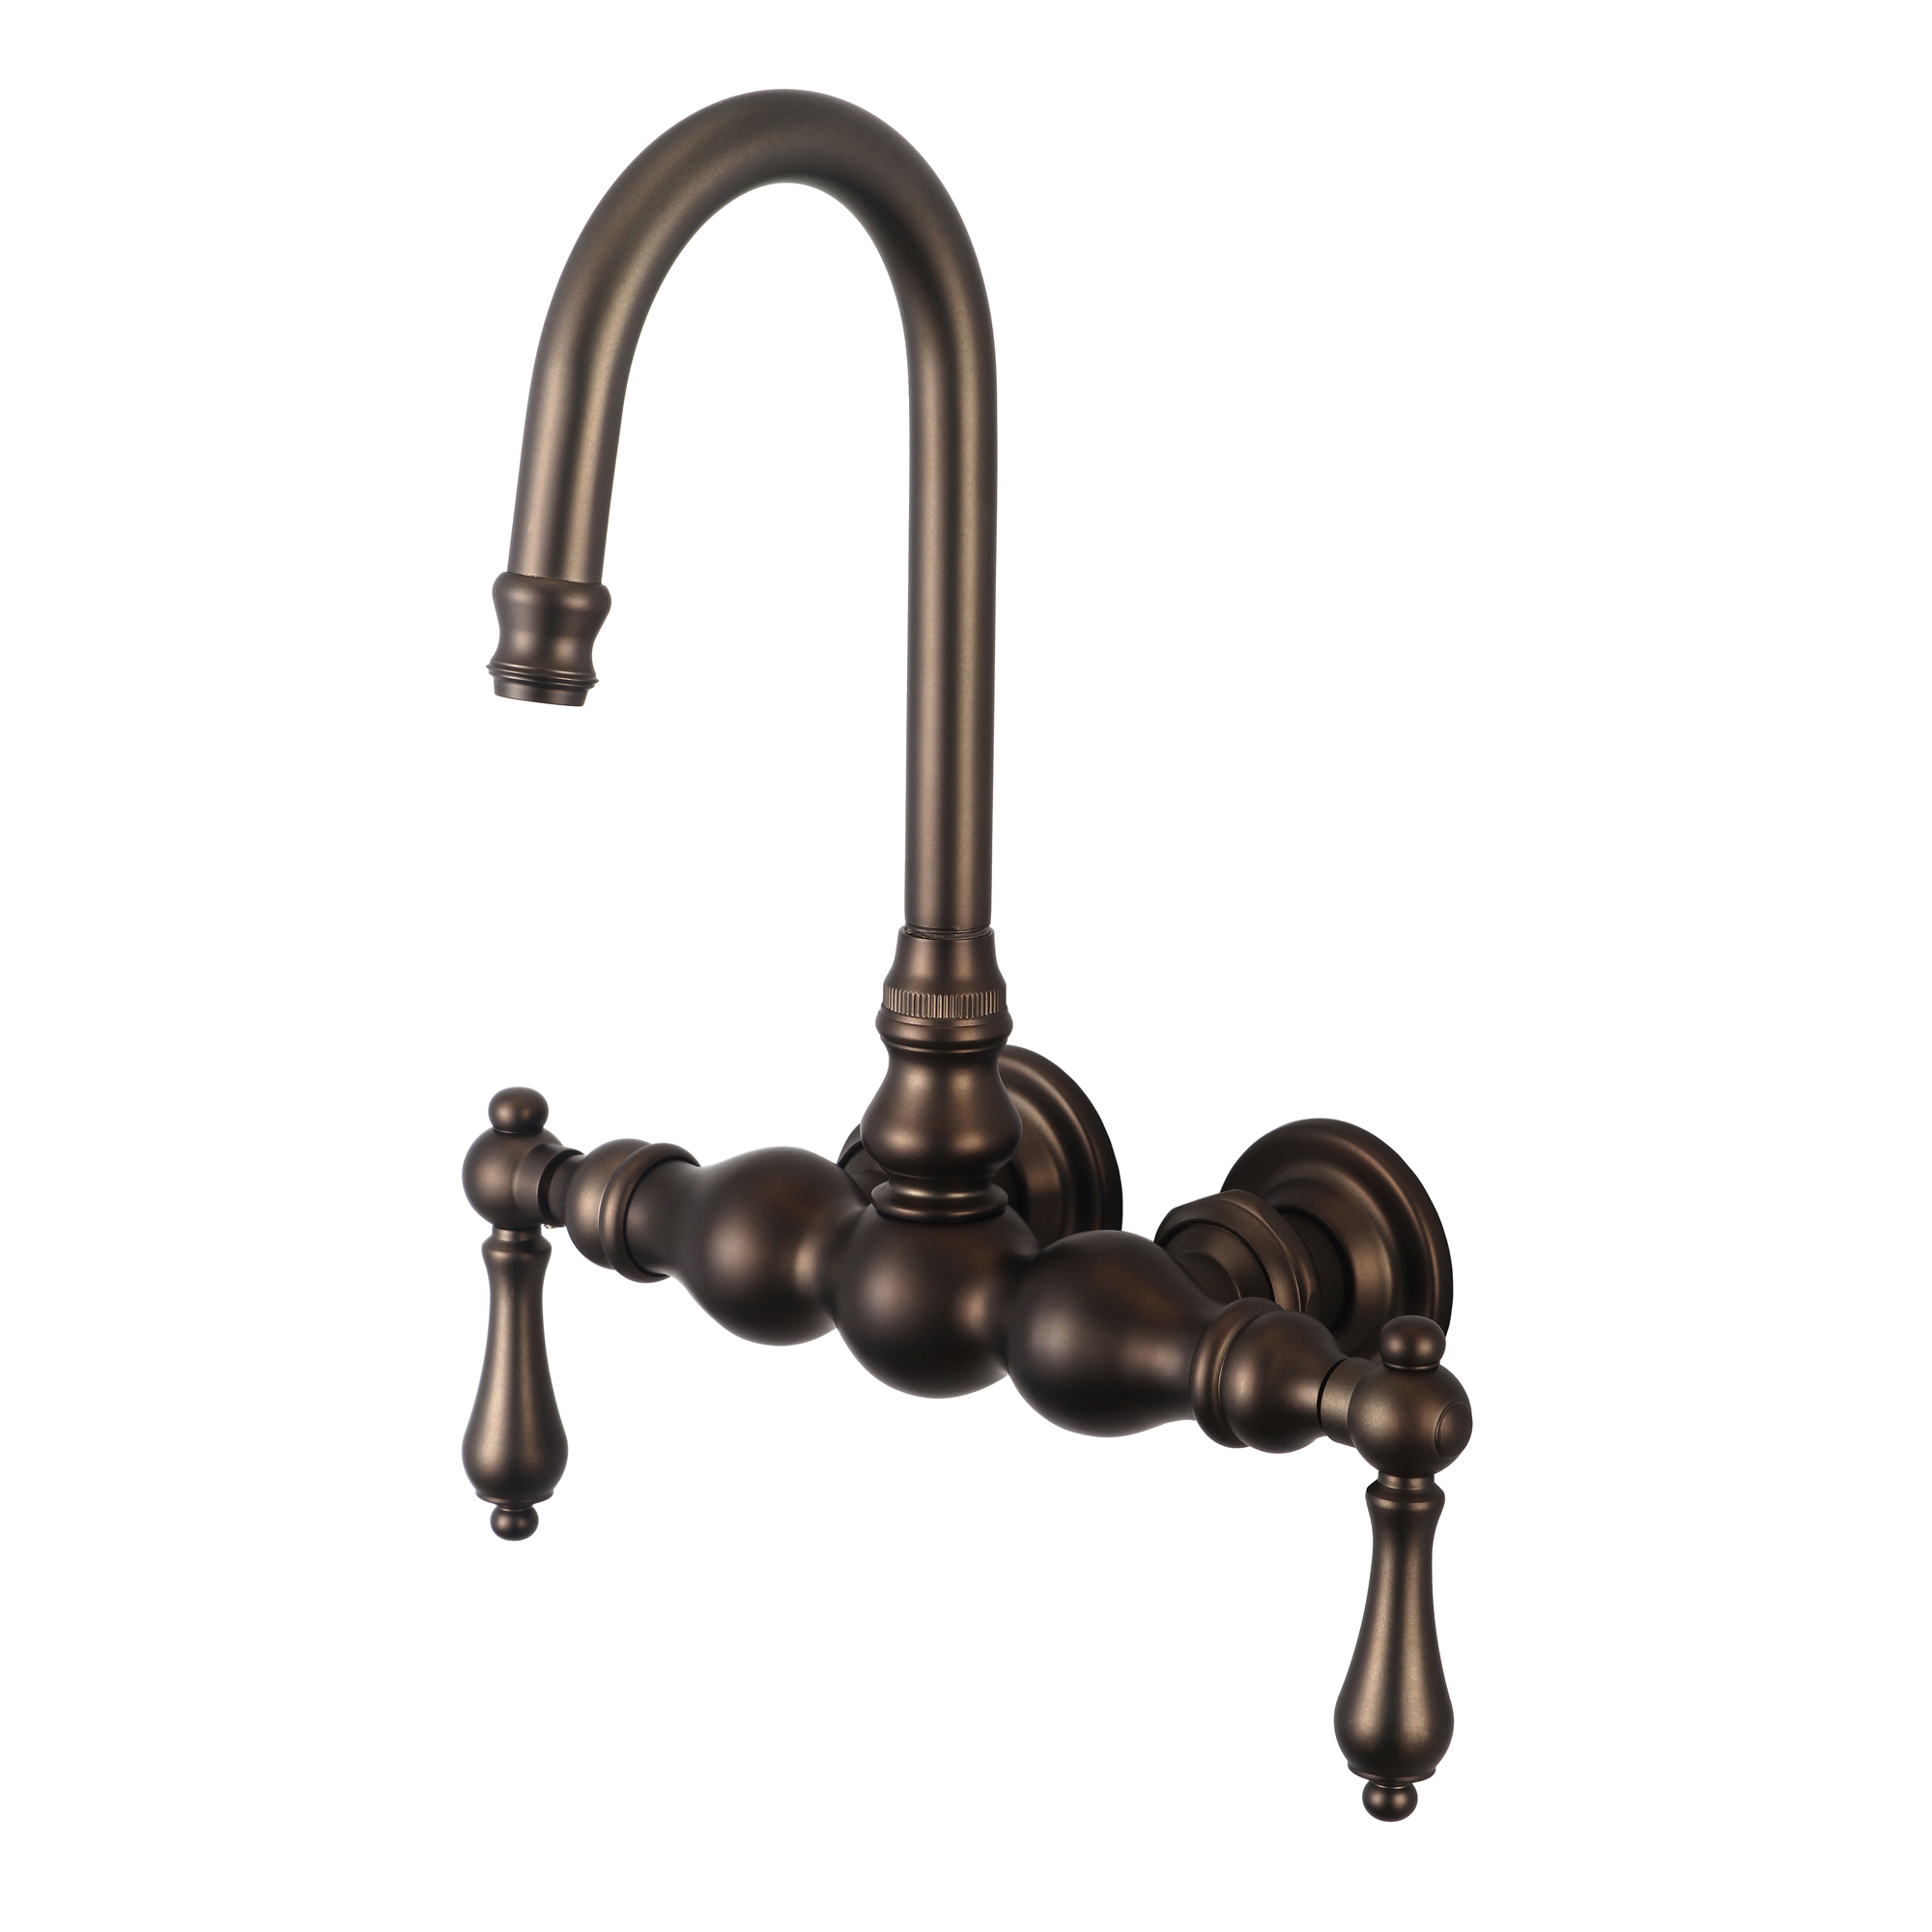 Vintage Classic 3.375 Inch Center Wall Mount Tub Faucet With Gooseneck Spout & Straight Wall Connector in Oil-rubbed Bronze Finish Finish With Metal Lever Handles Without Labels